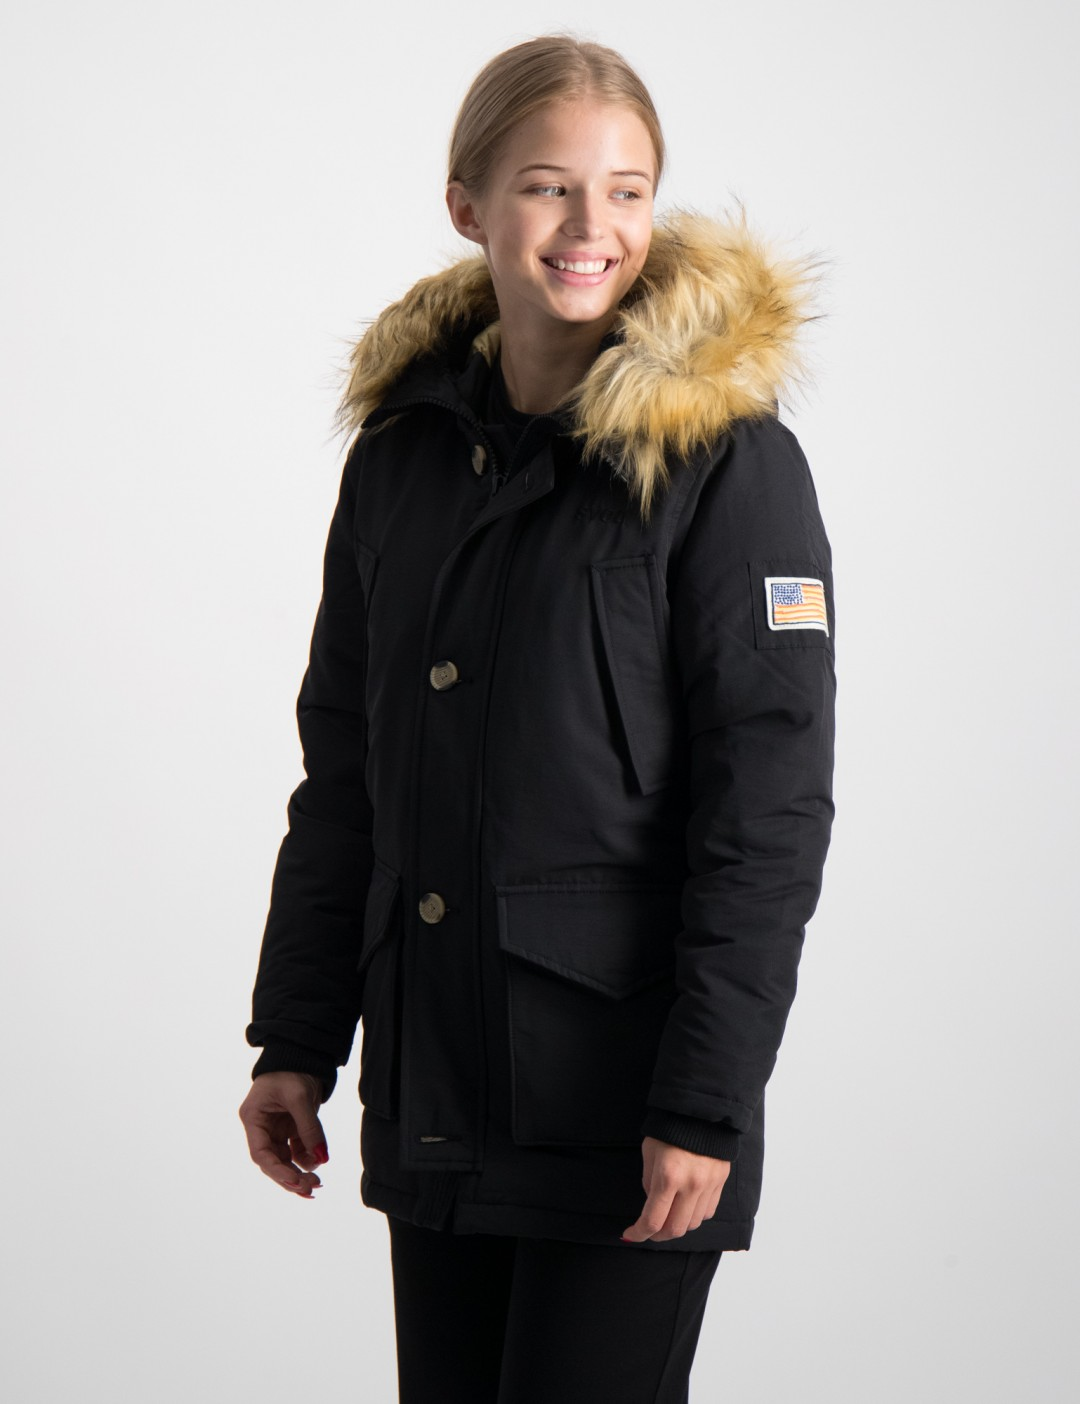 Om Smith Jr Jacket Blå från Svea | KidsBrandStore